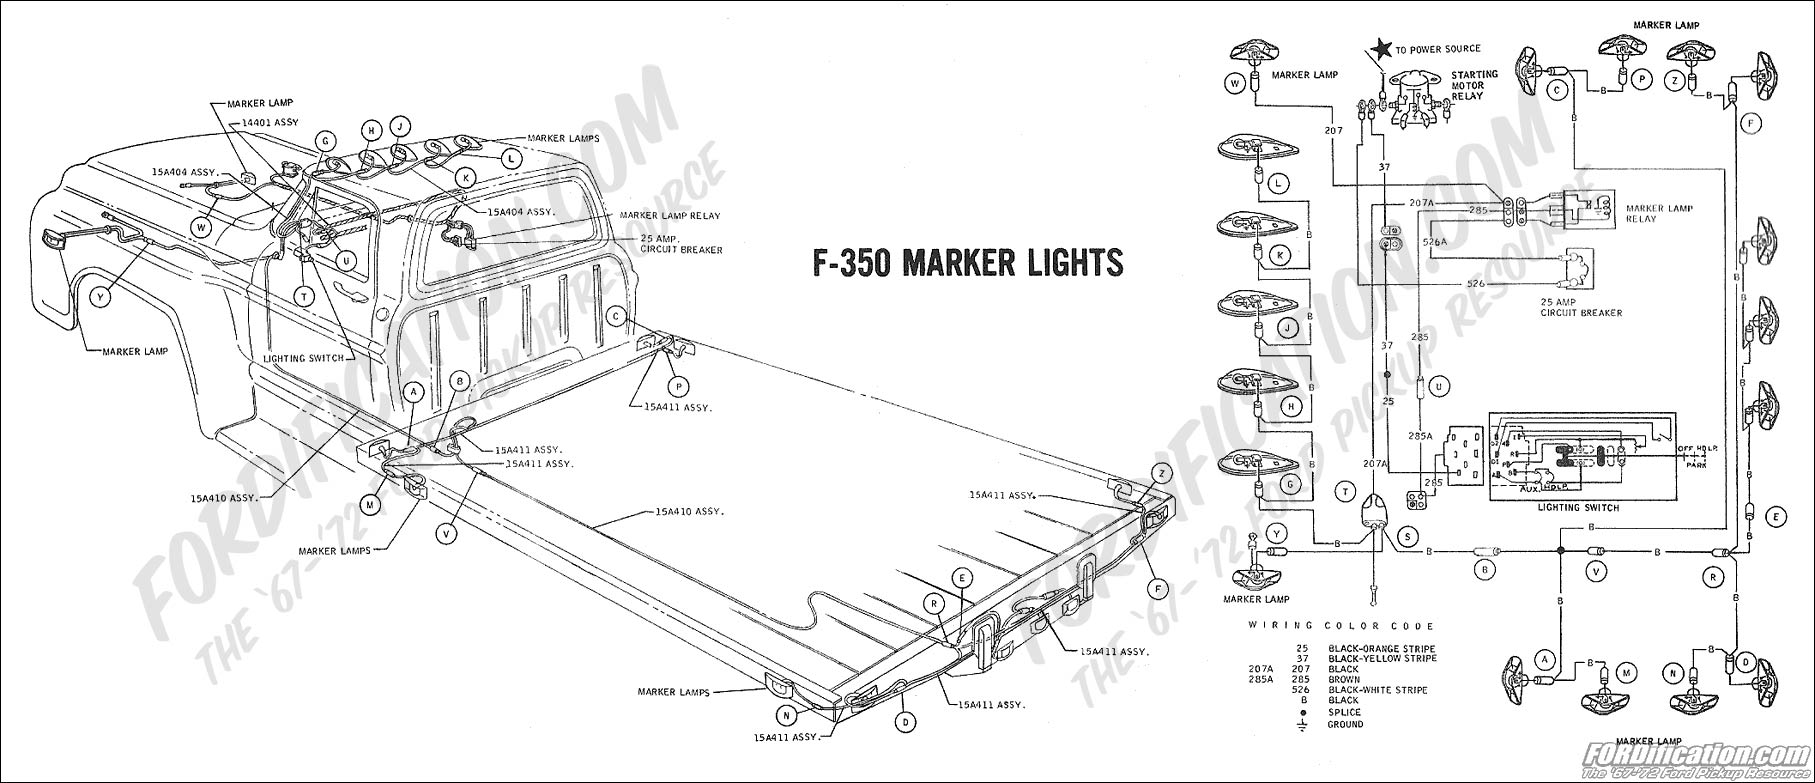 Ford Truck Tail Light Wiring Trusted Diagram 2000 F350 Technical Drawings And Schematics Section H 1969 F